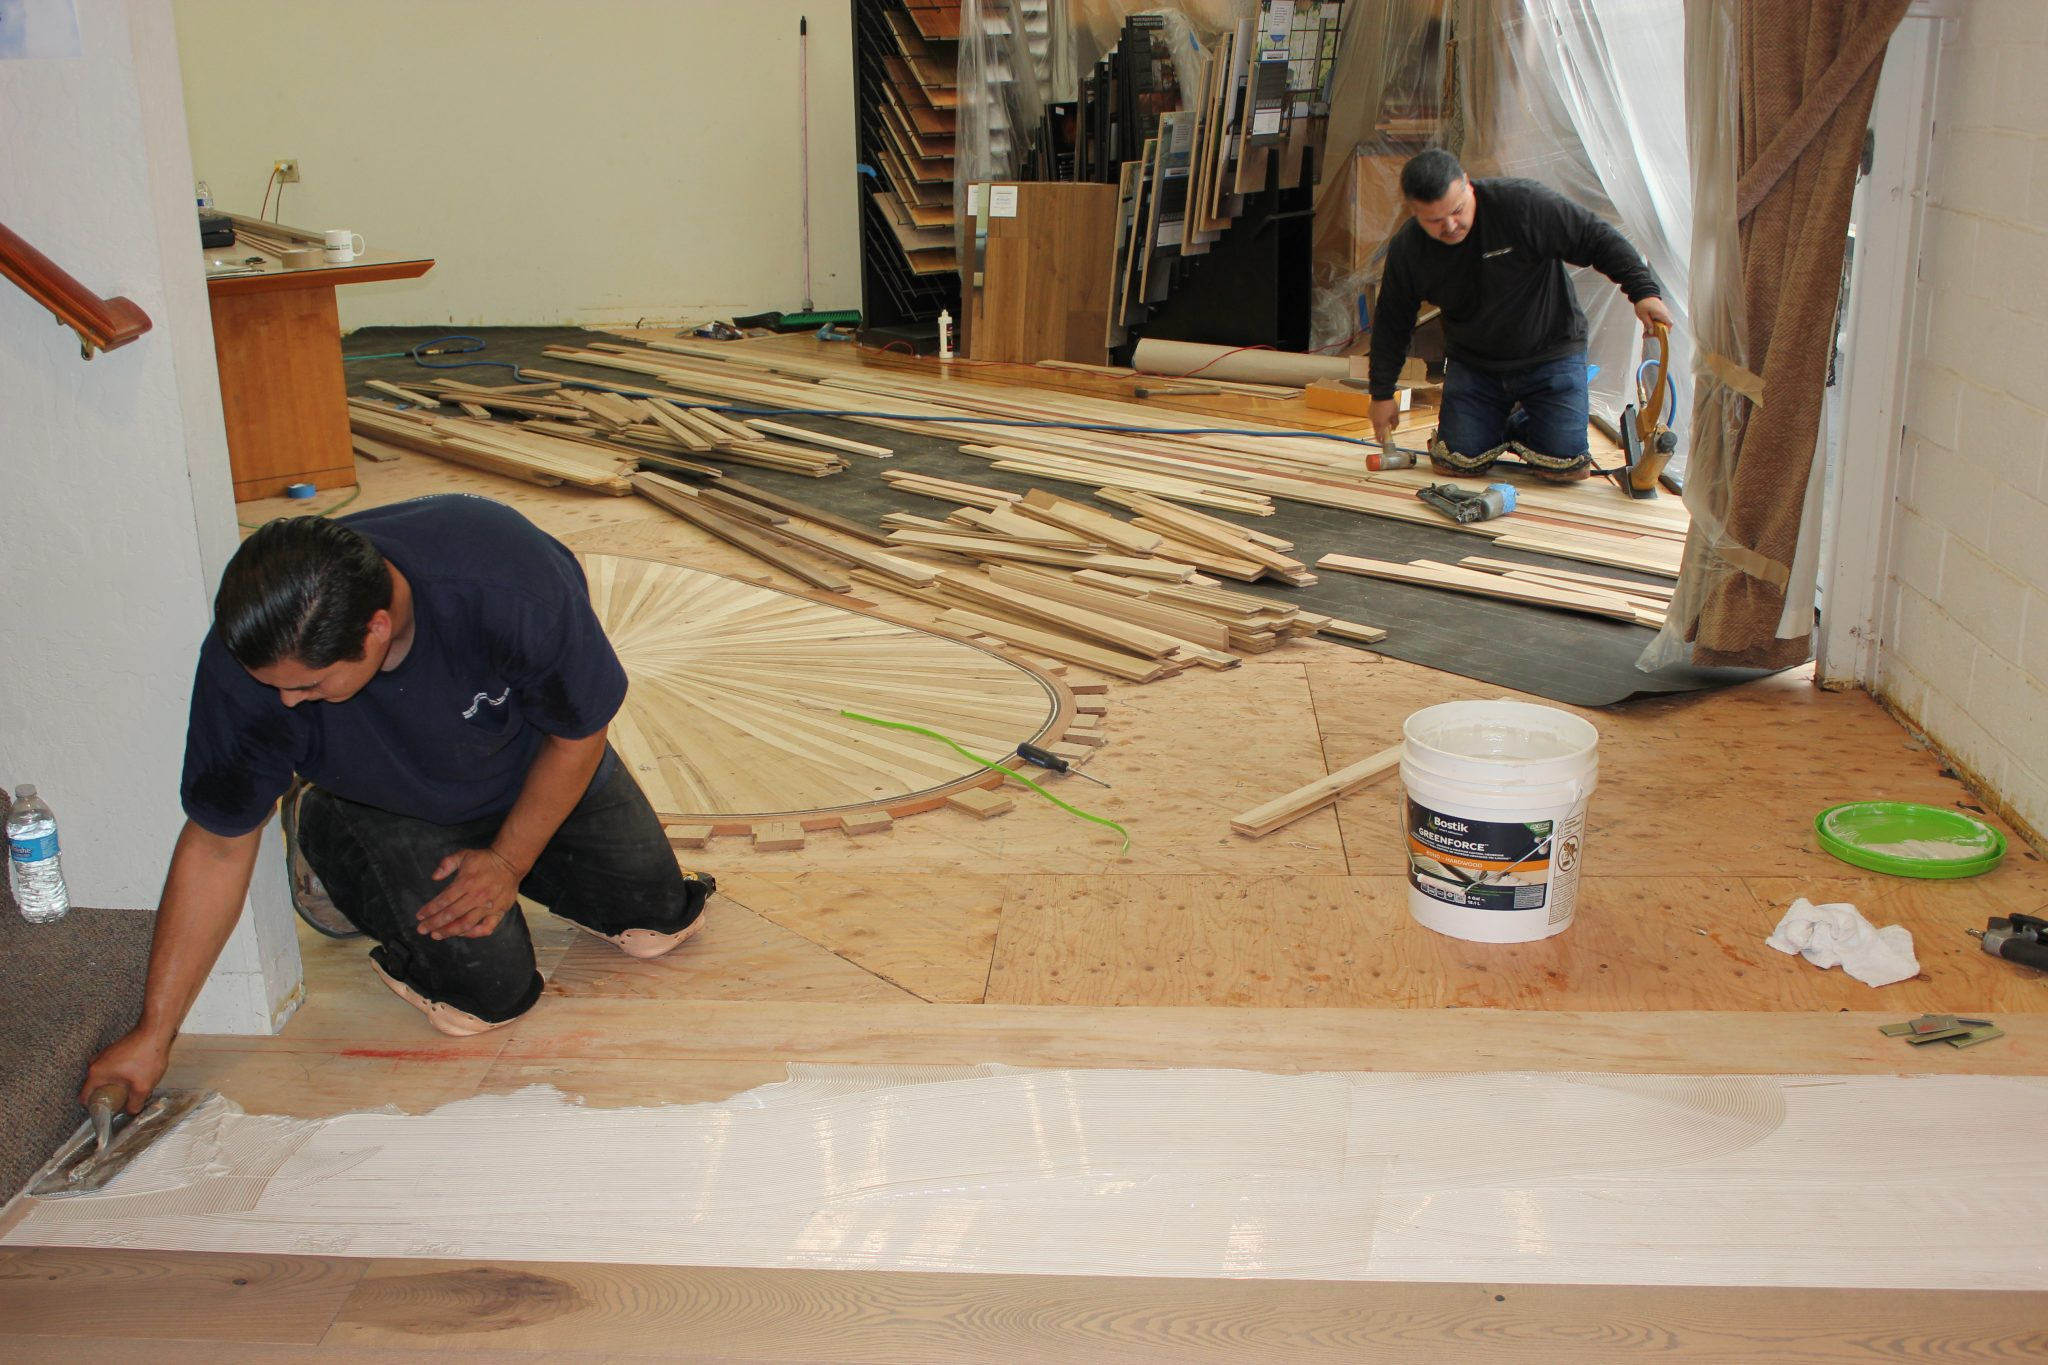 Gluing down the new flooring   Slaughterbeck Floors